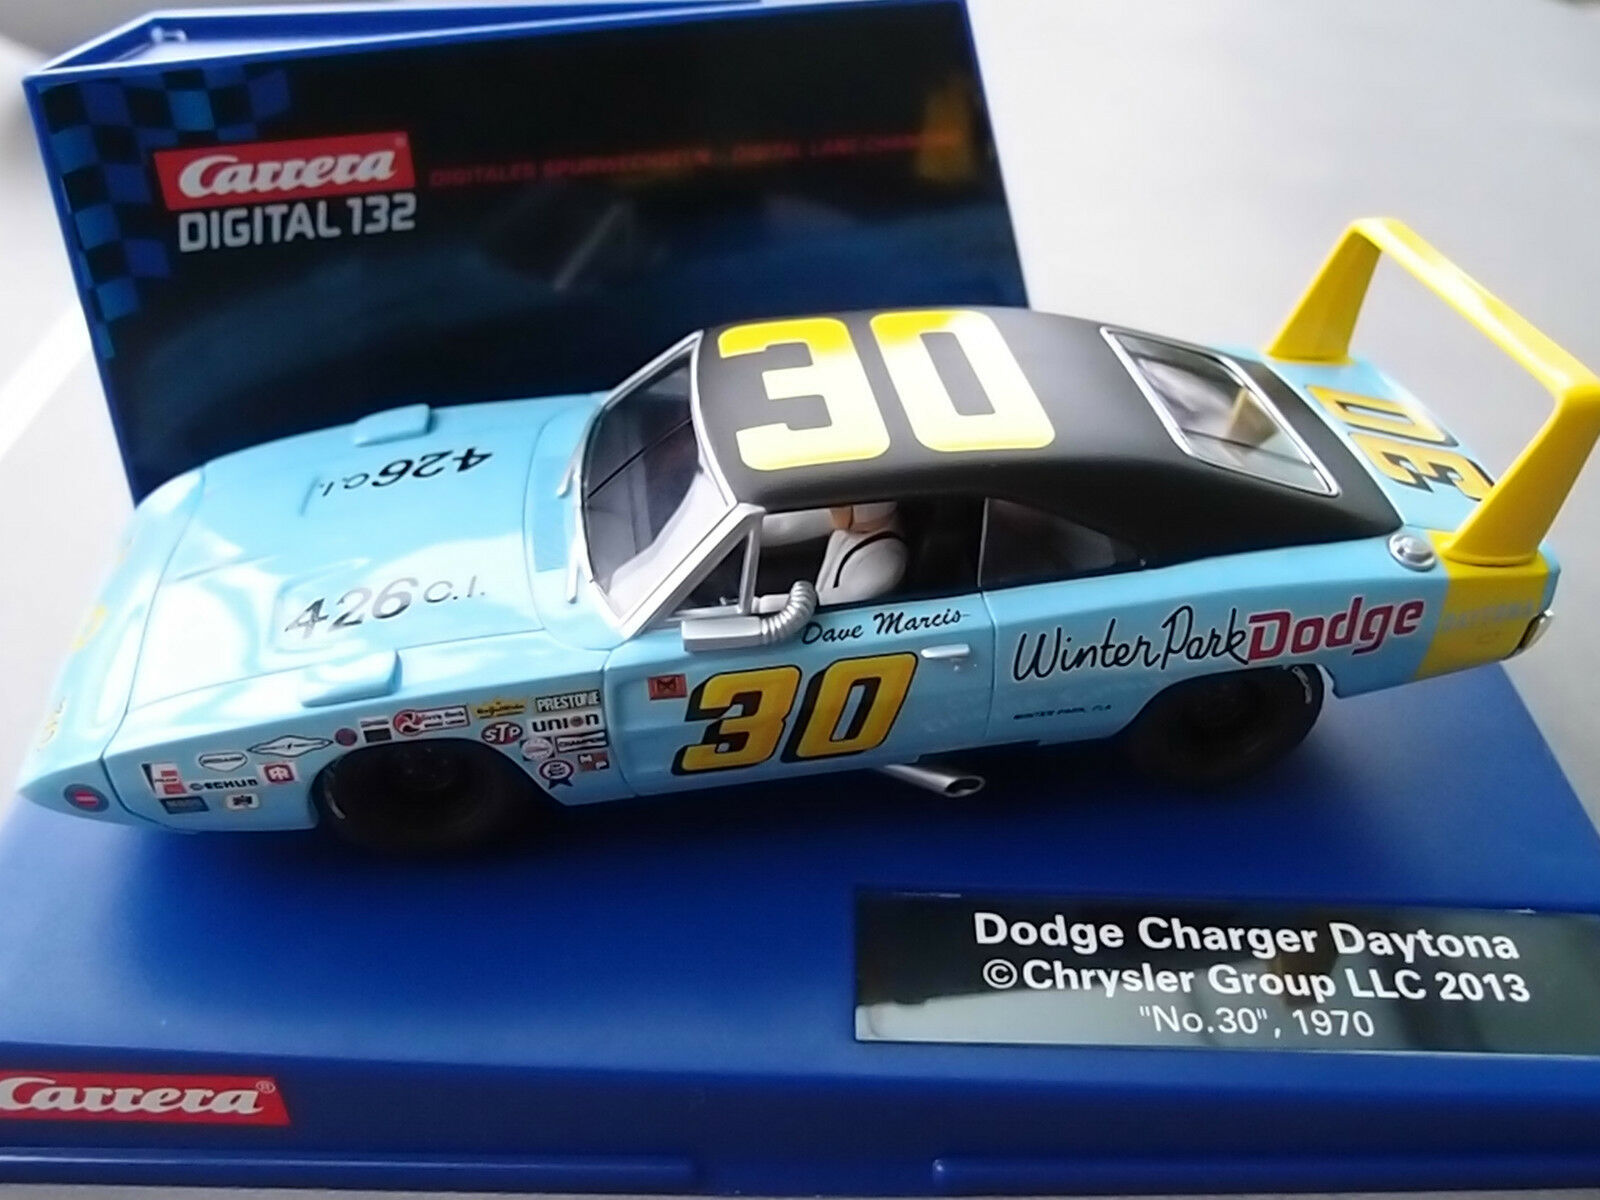 Carrera Digital 132 30652 Dodge Charger Daytona   No.30  , 1970 Nip